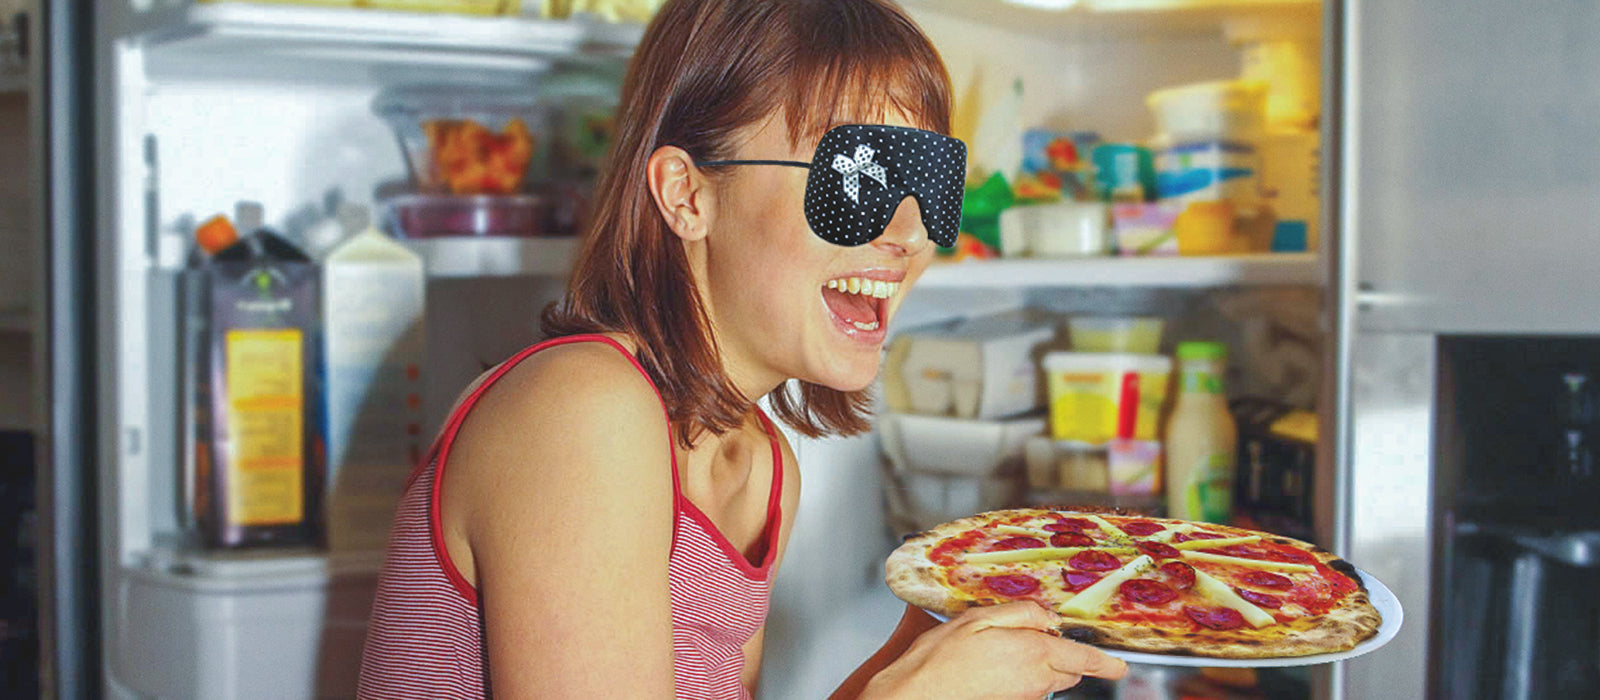 You Ever Eat Pizza in Your Sleep? Here's Why